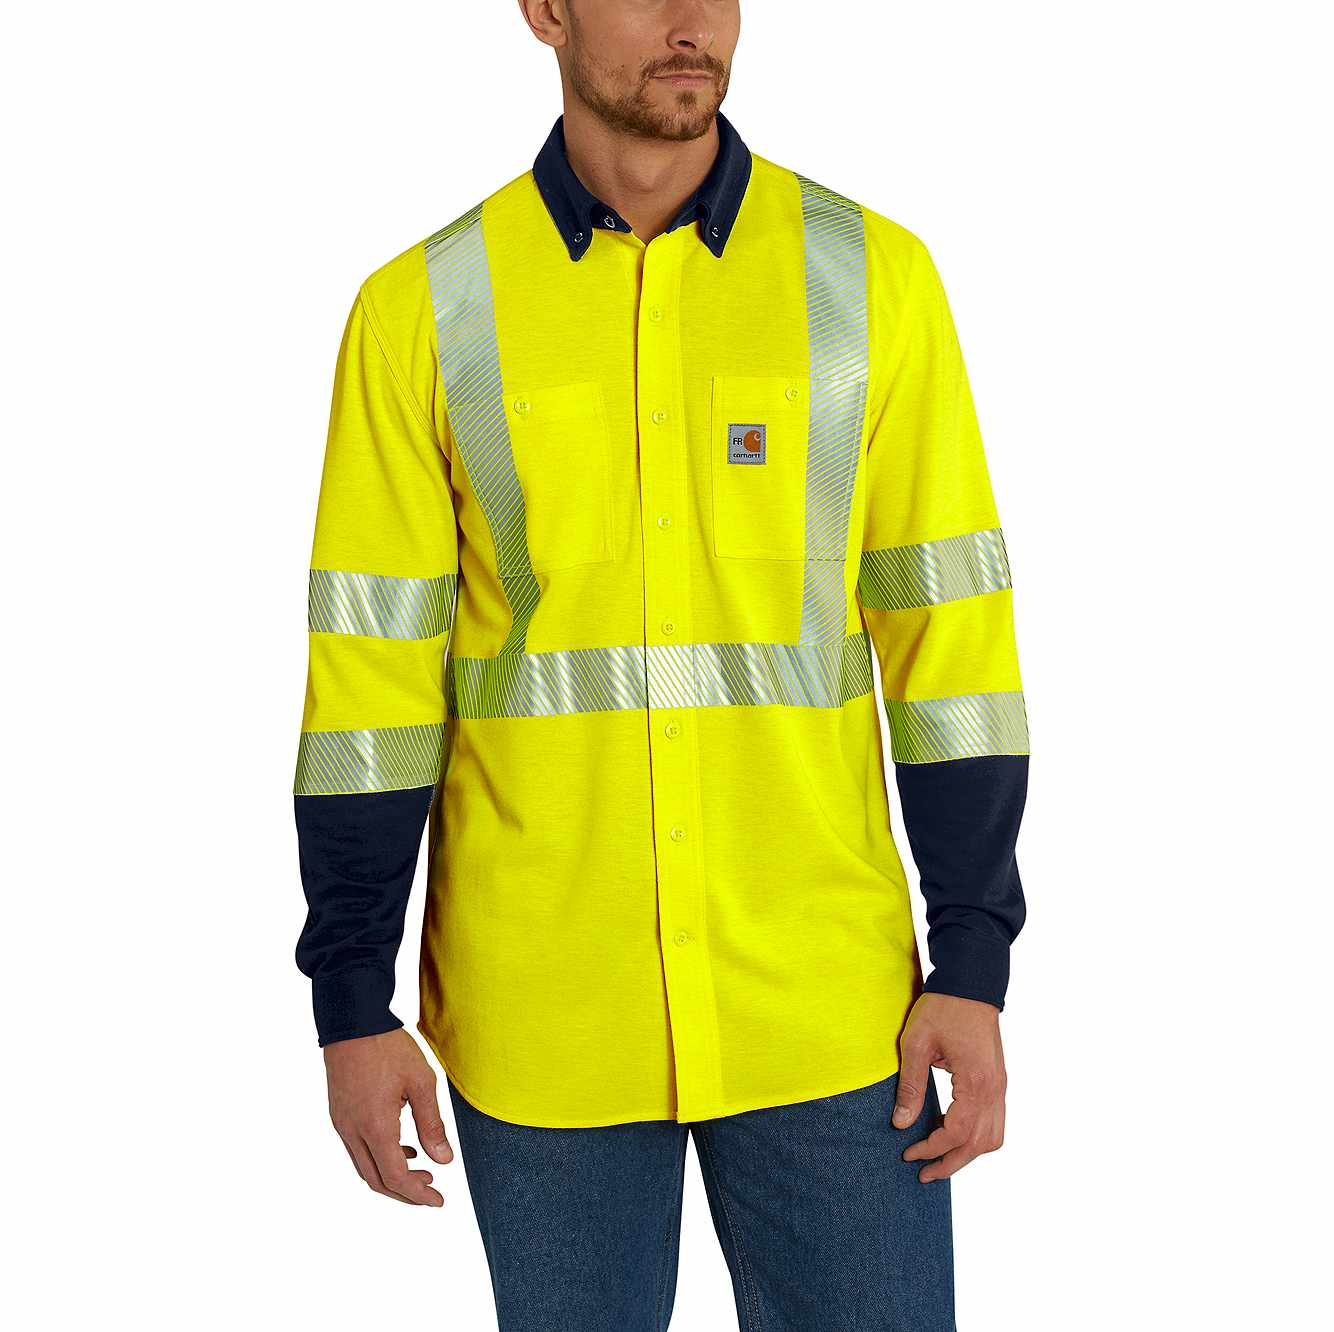 Picture of Flame-Resistant High-Vis Force Hybrid Shirt in Brite Lime